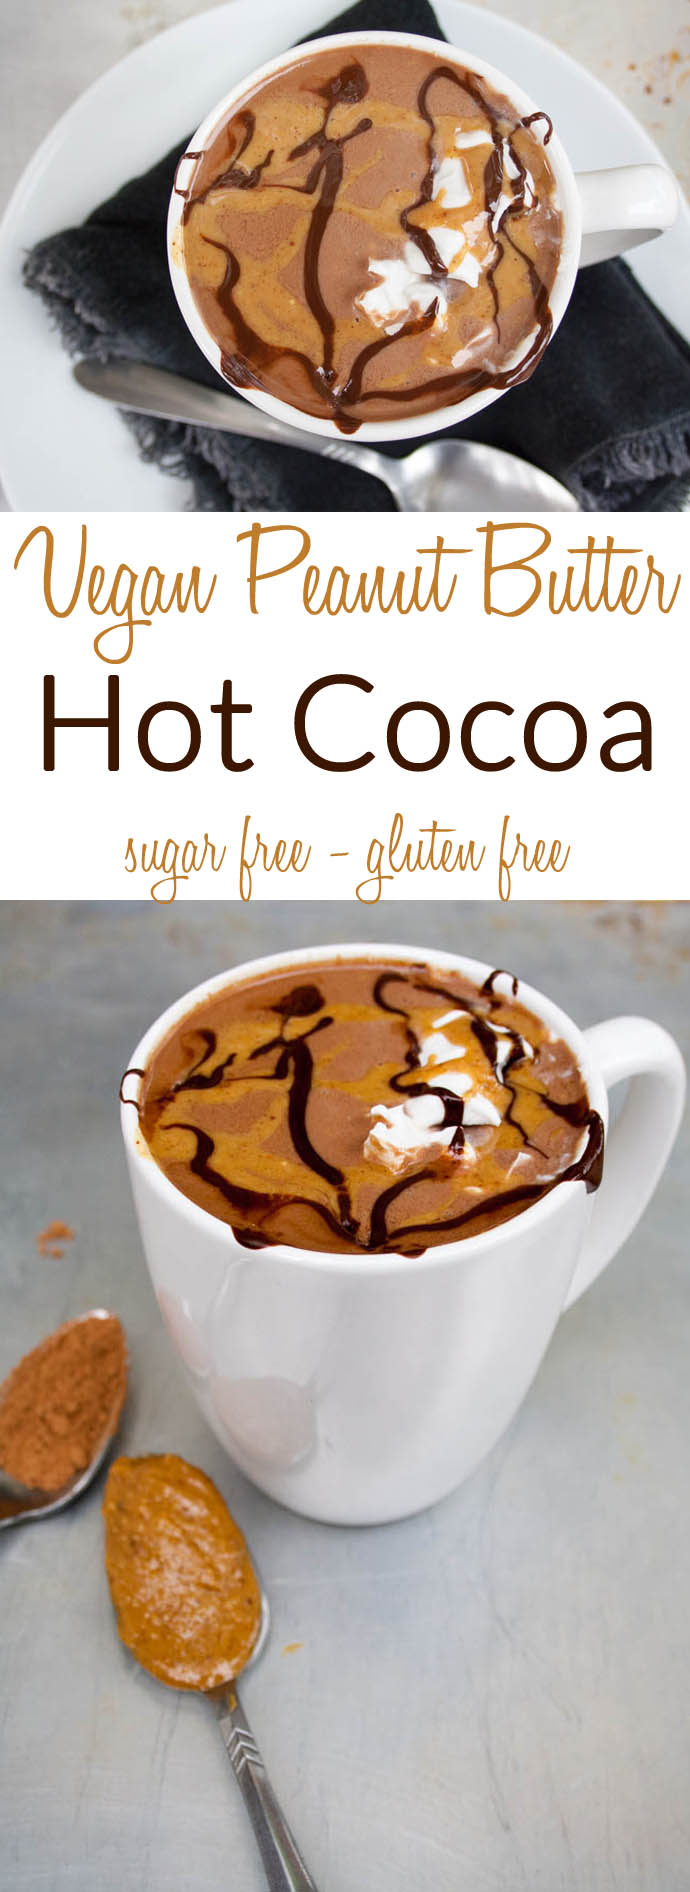 Vegan Peanut Butter Hot Cocoa (sugar free, gluten free) - This easy healthy comforting drink will make you wonder why you ever bought the packaged mixes.